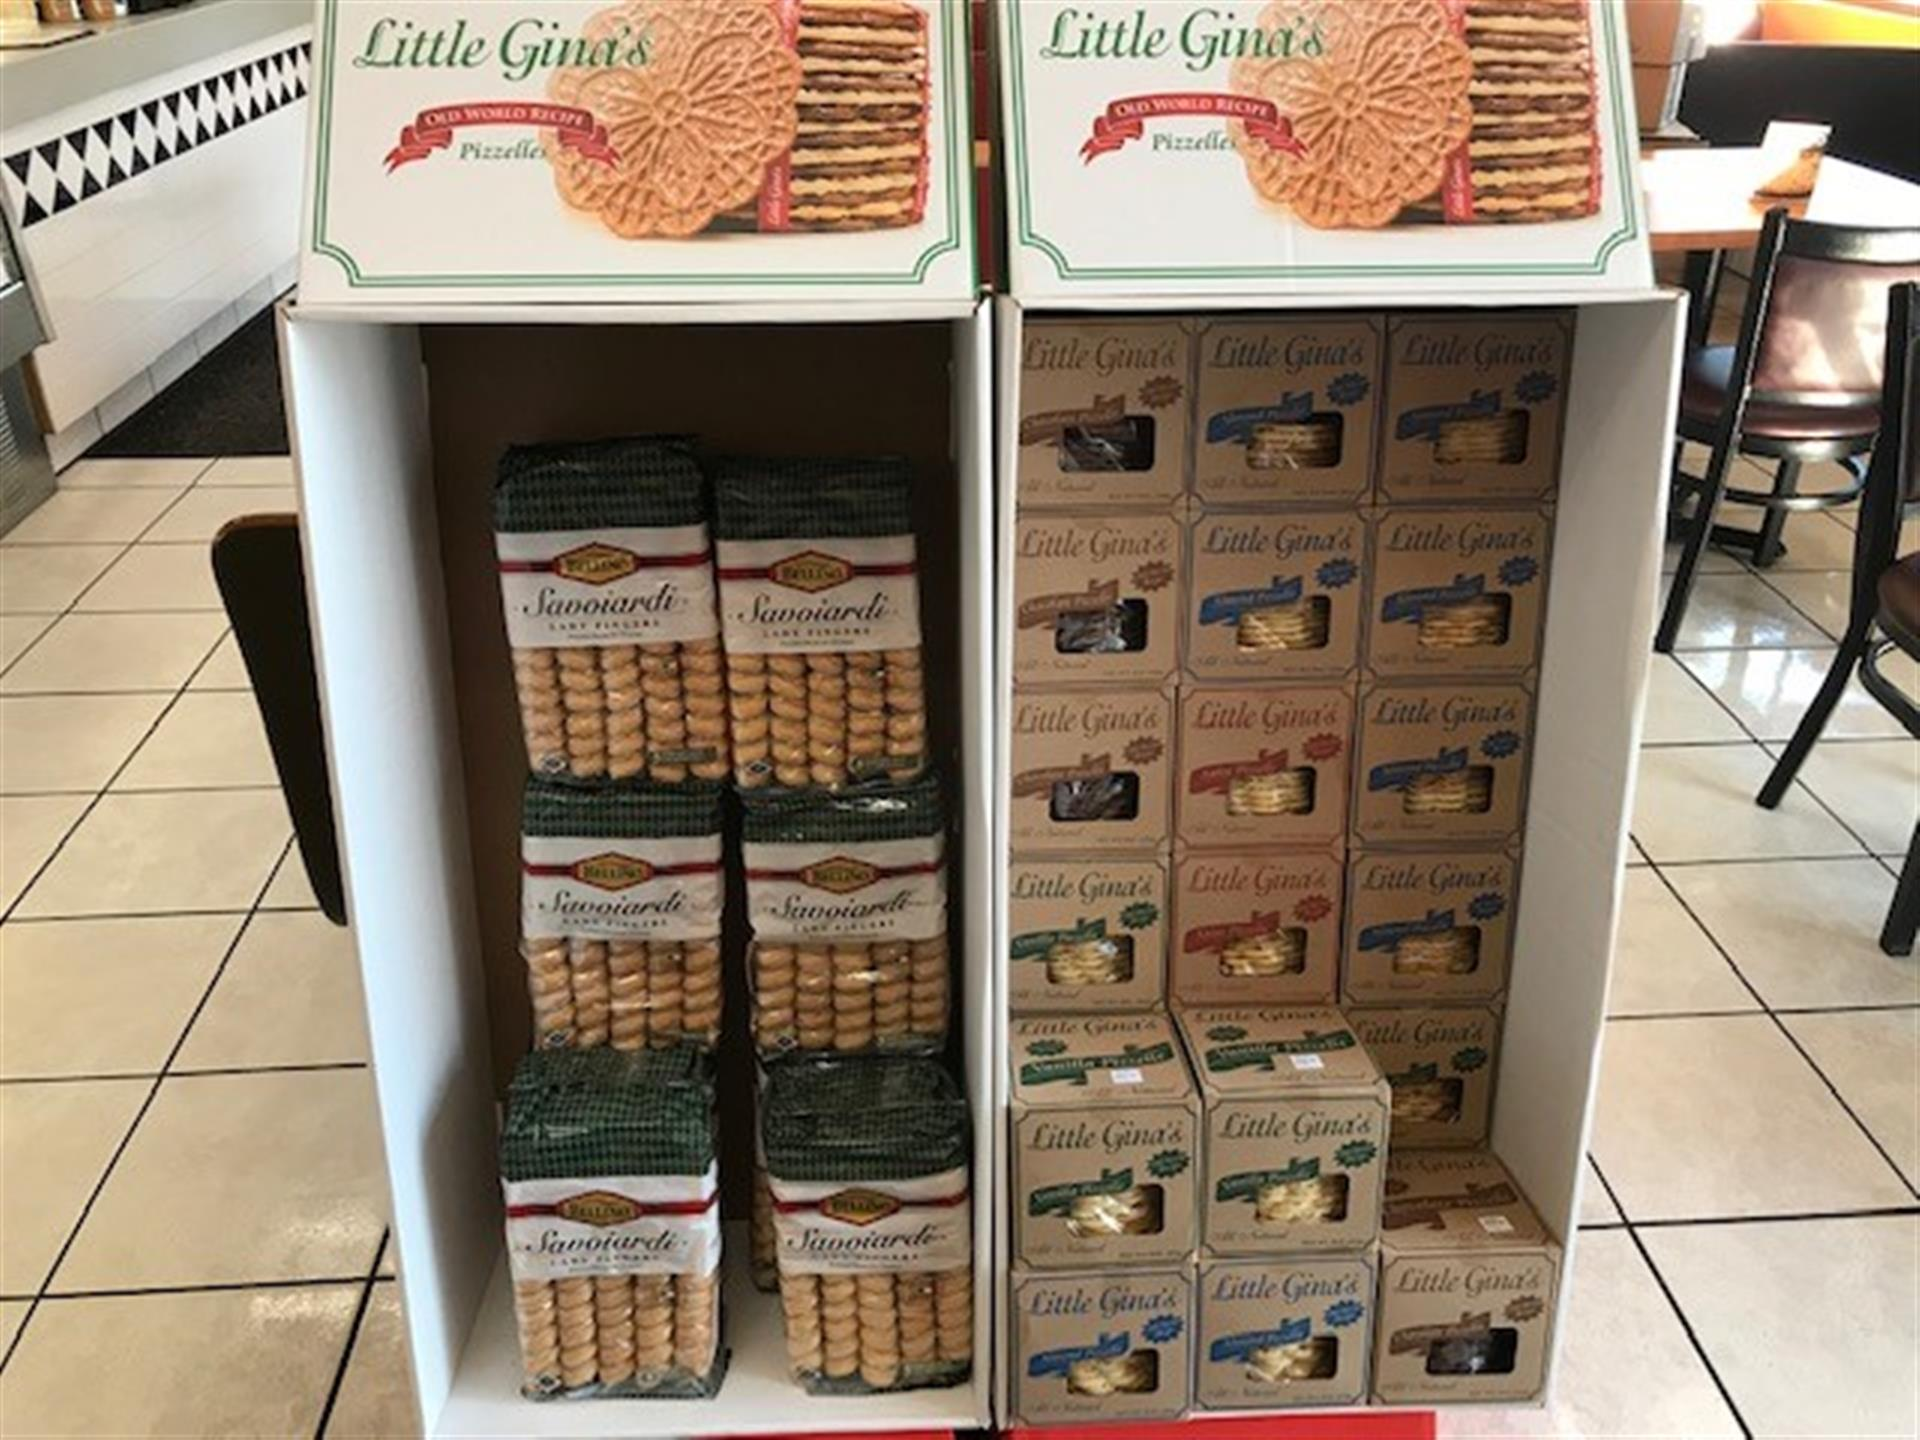 Little Gina's Italian Cookies stocked on the shelves